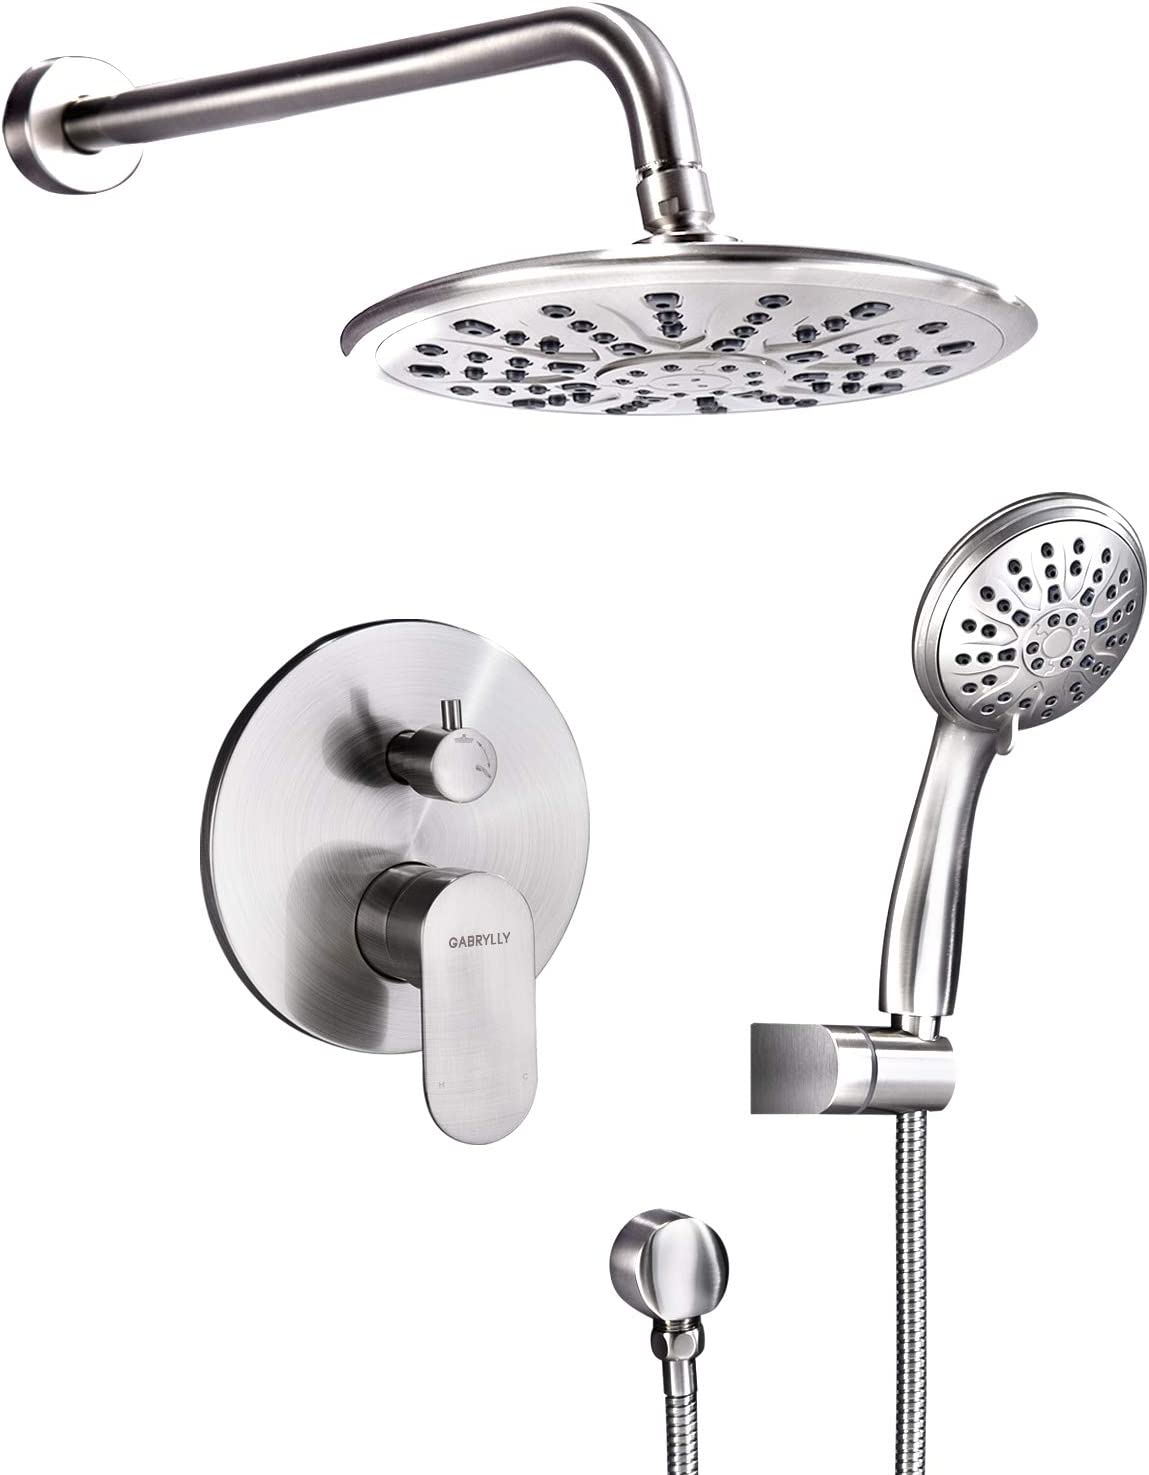 "Shower System, Wall Mounted Shower Faucet Set for Bathroom with High Pressure 8"" Rain Shower head and 3-Setting Handheld Shower Head, Brushed Nickel (Rough in Pressure Balance Valve Included) - -"